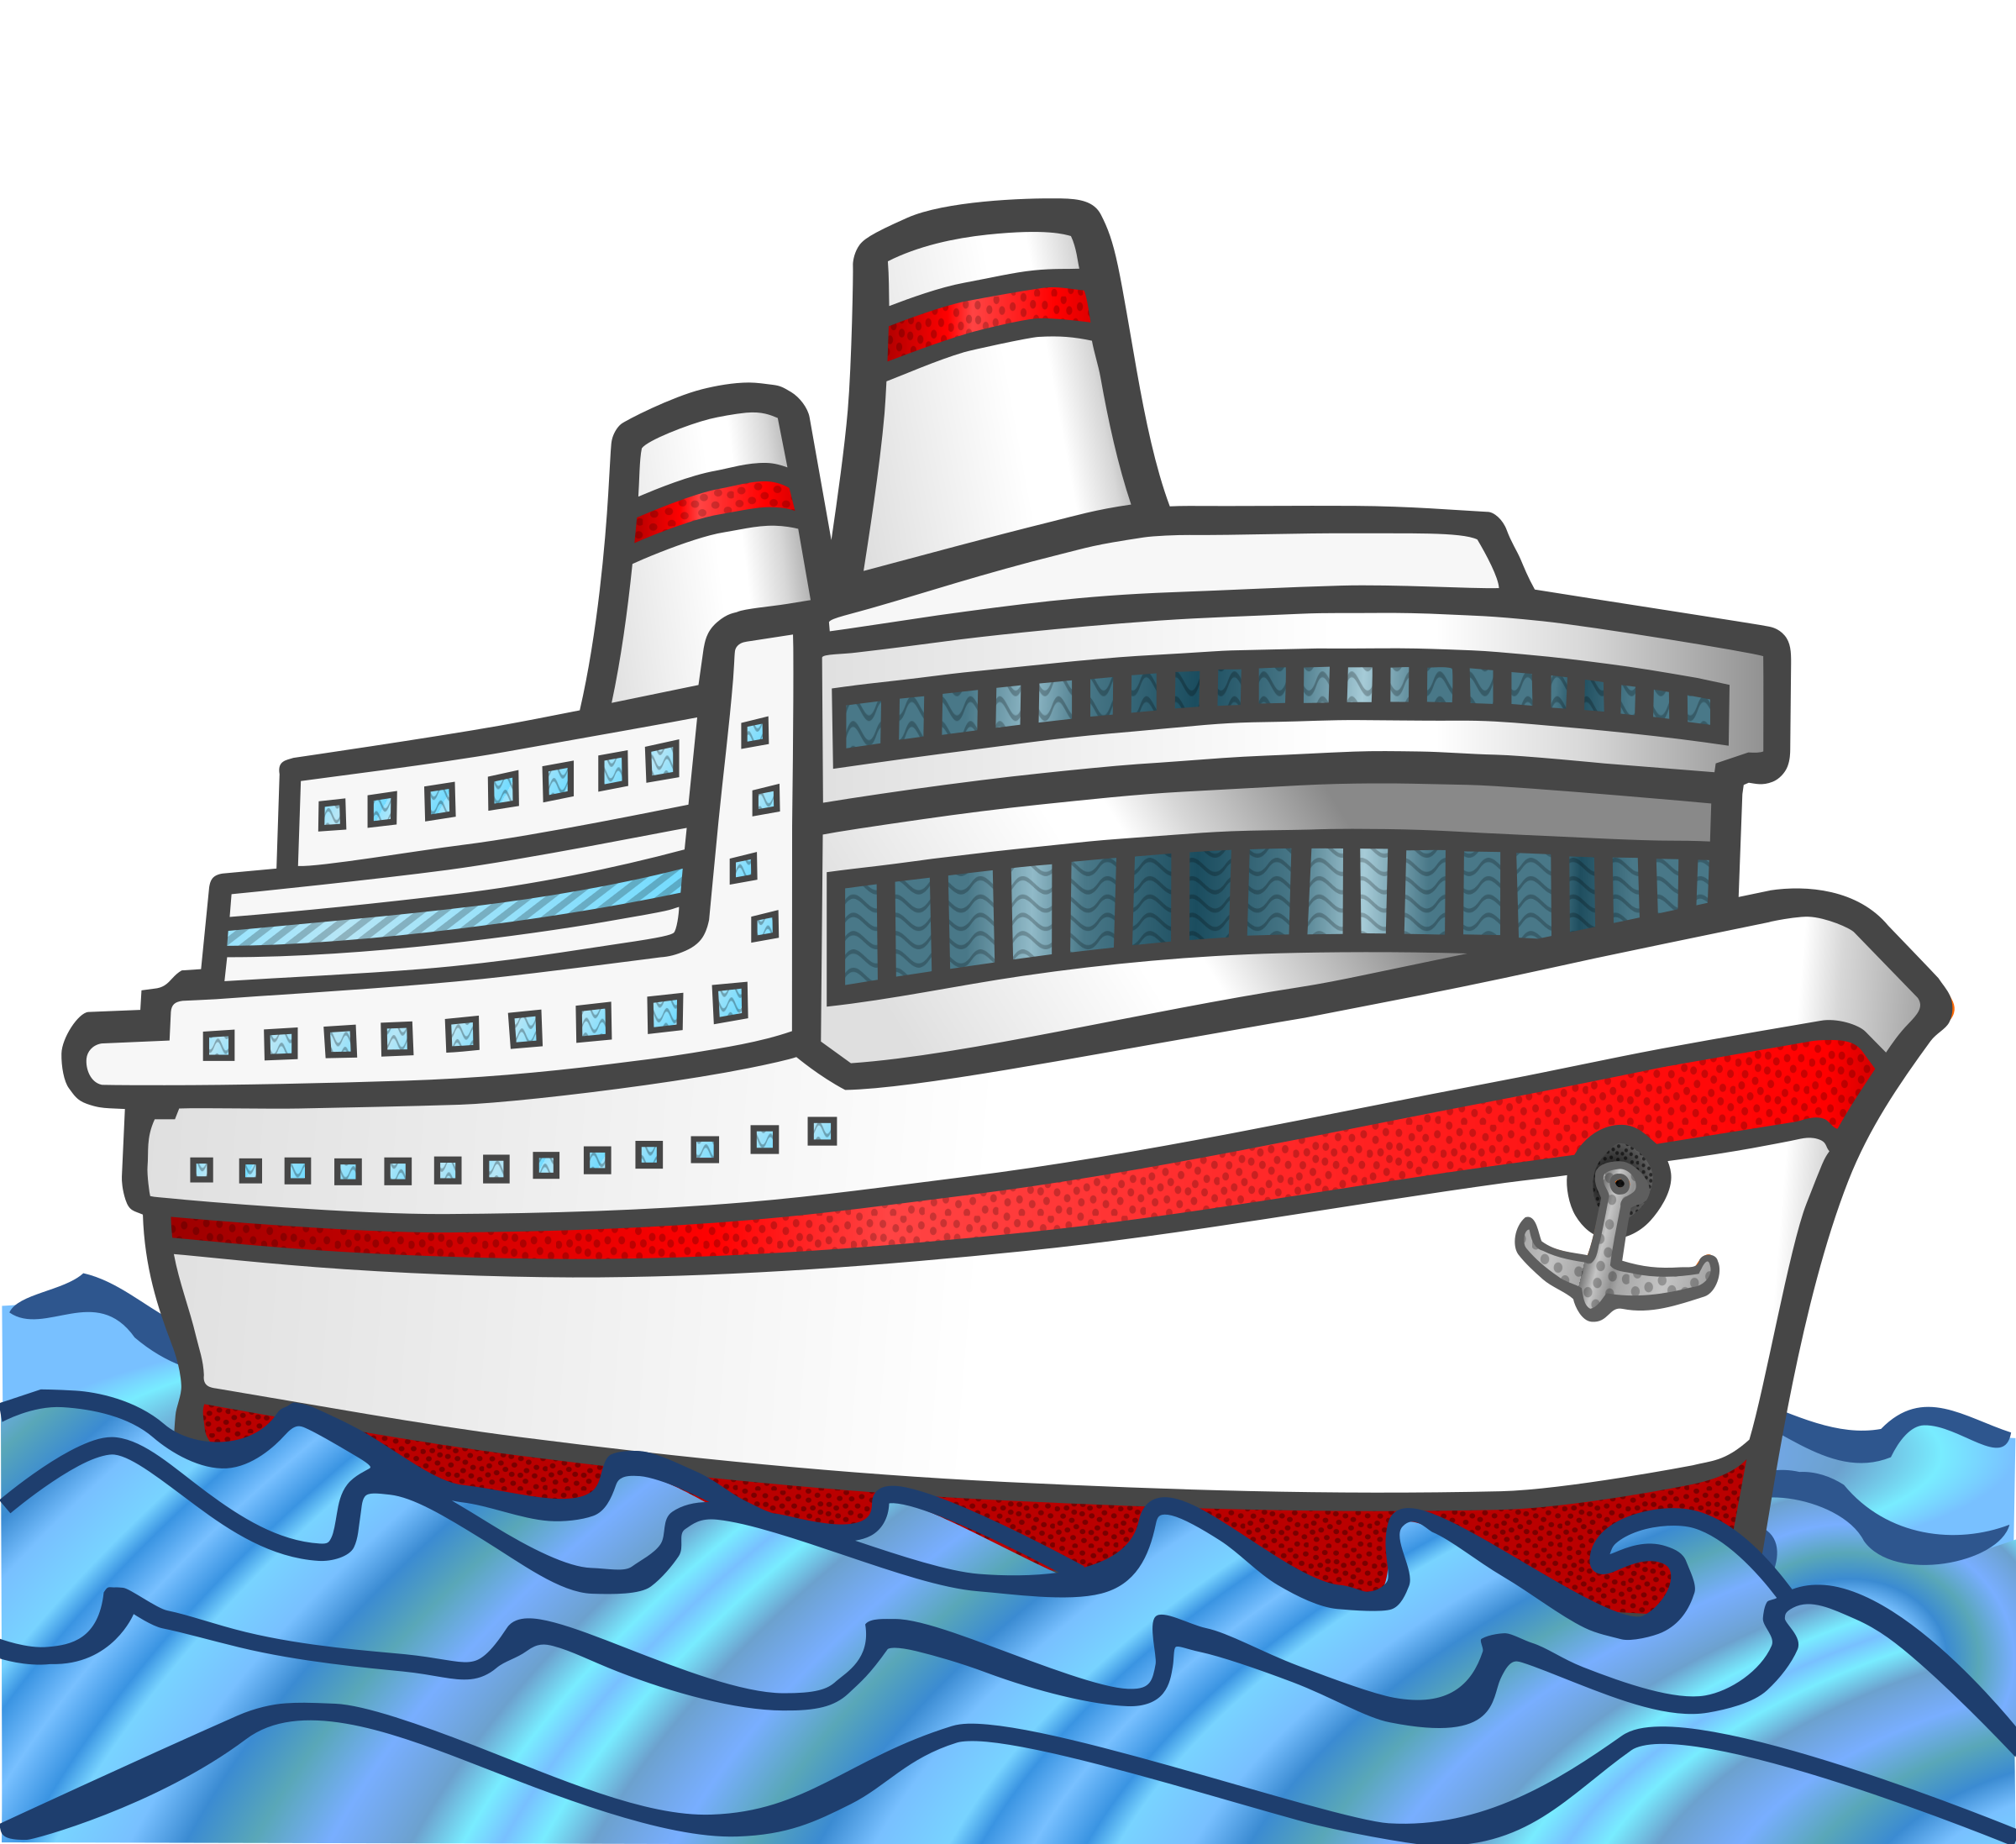 Ferry clipart cruise ship Images art Cliparting com clip